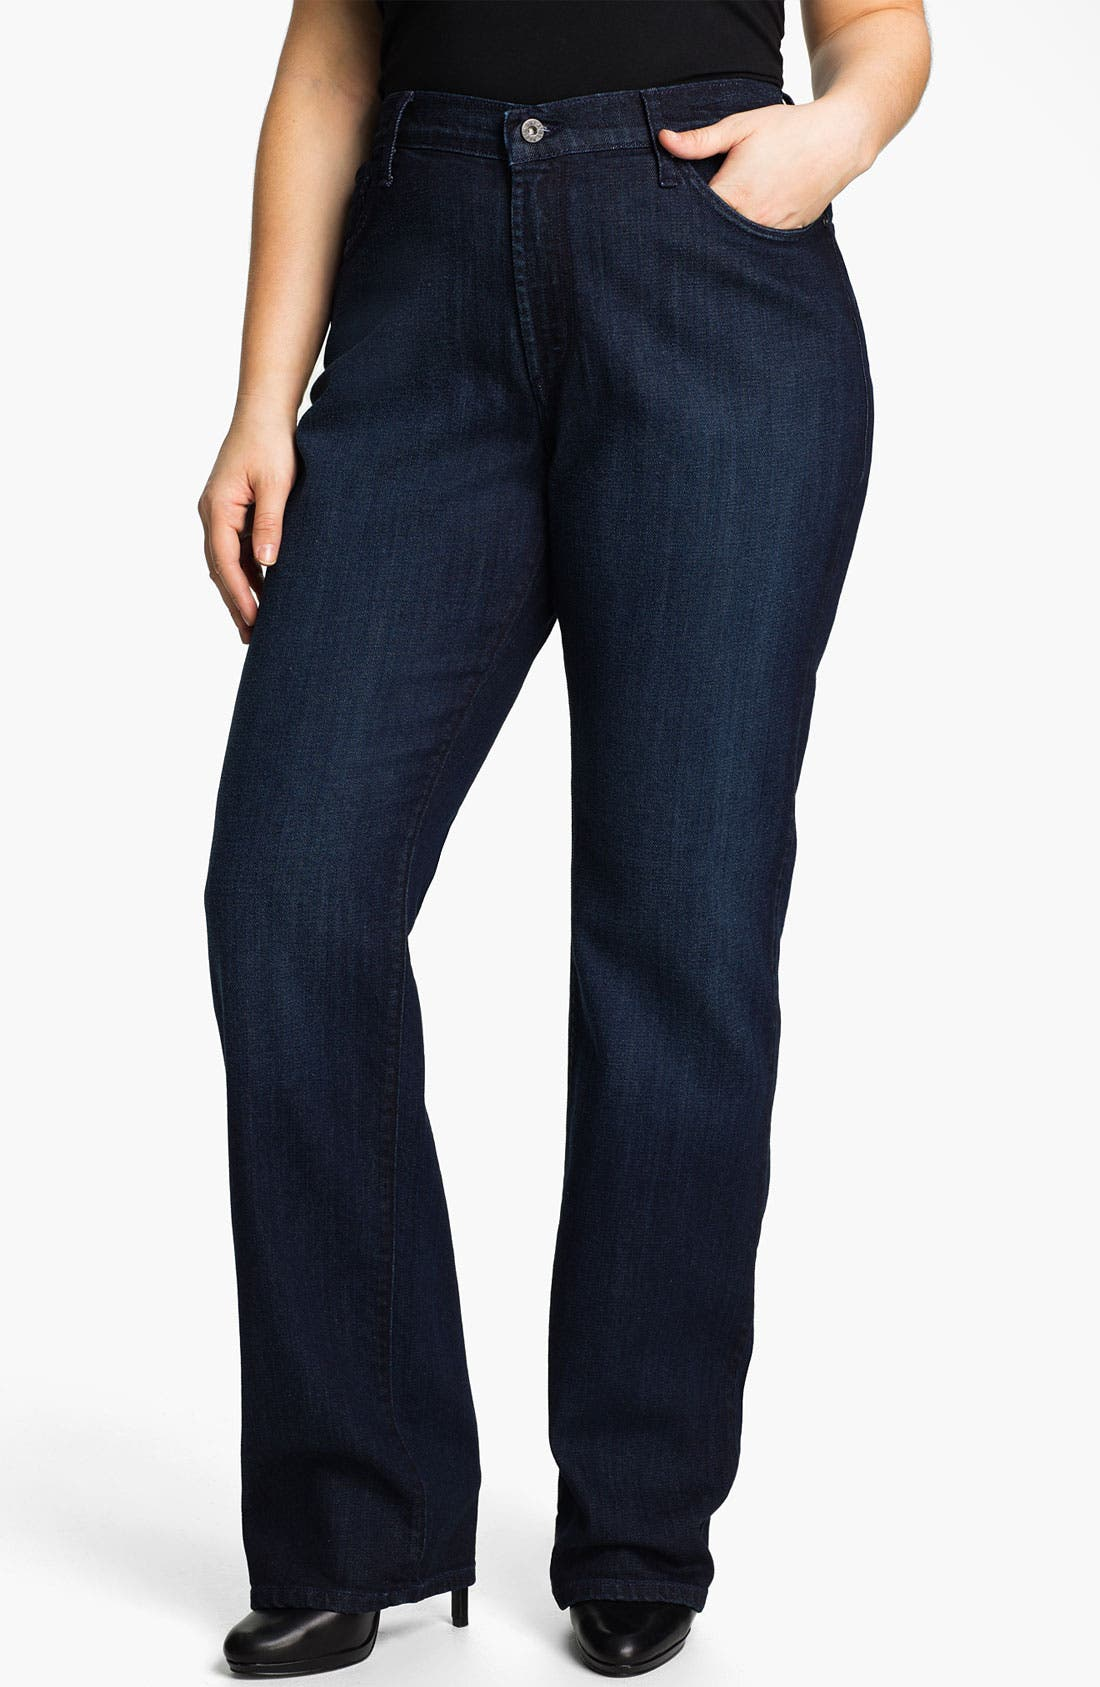 Main Image - James Jeans High Rise Straight Leg Jeans (Plus)